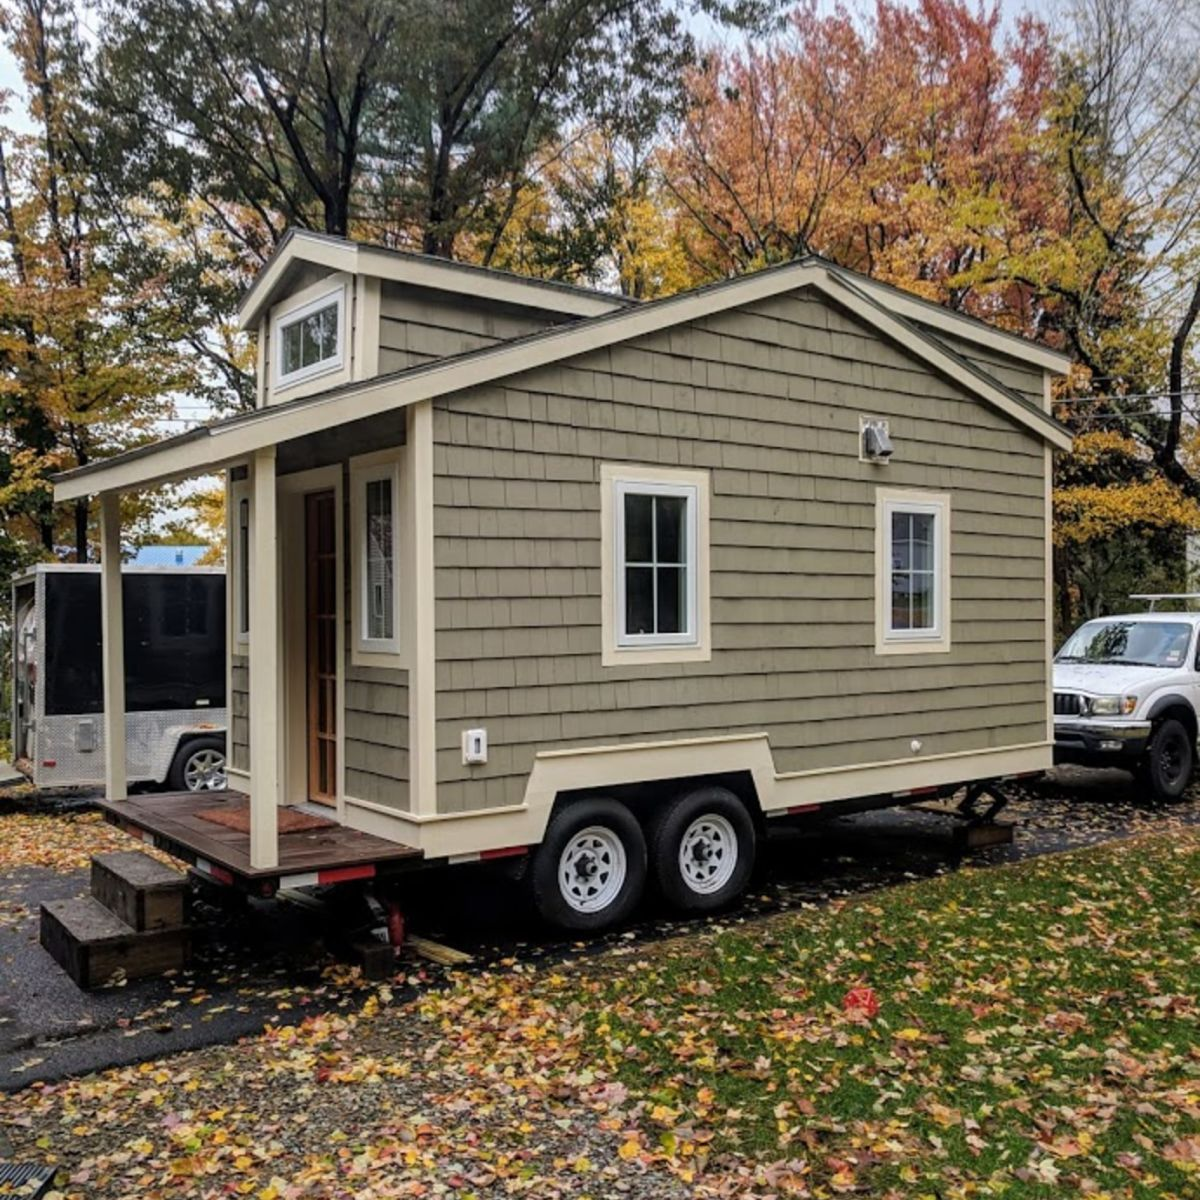 Phenomenal 20 Ft Craftsman Style Tiny House Nh Tiny House For Sale Home Interior And Landscaping Oversignezvosmurscom